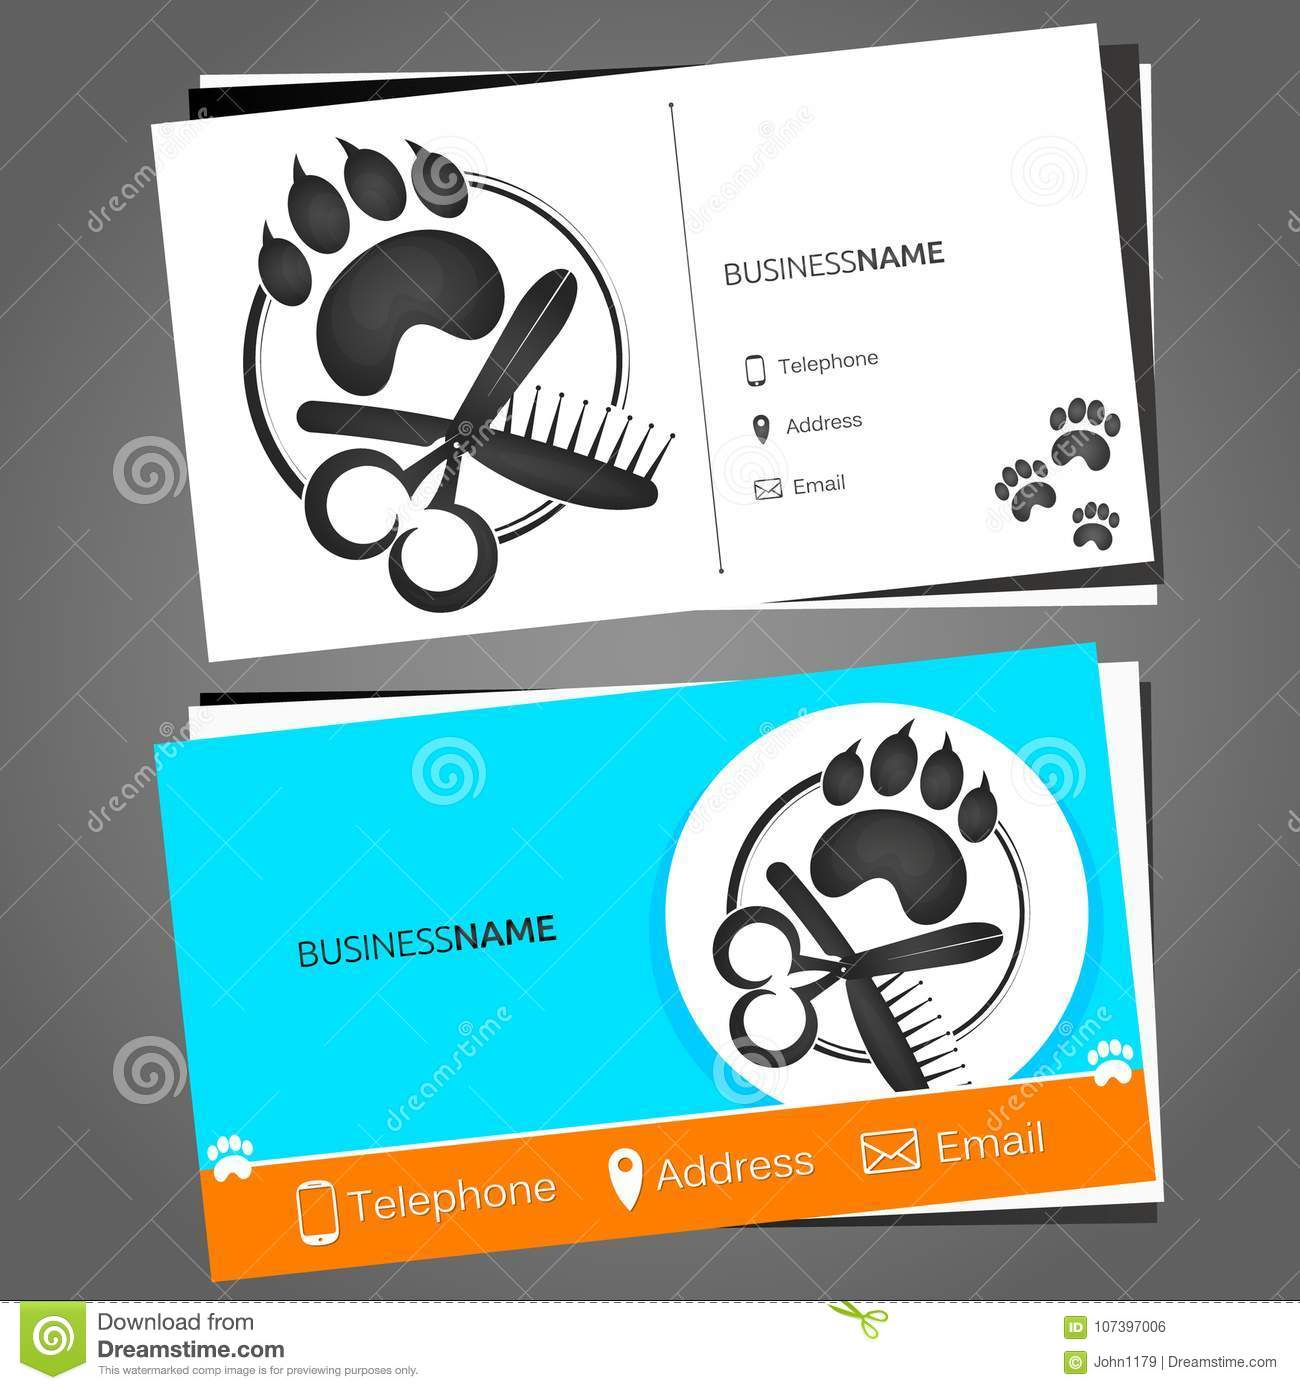 Business card for a hairdresser for pets stock vector illustration download business card for a hairdresser for pets stock vector illustration of comb flat colourmoves